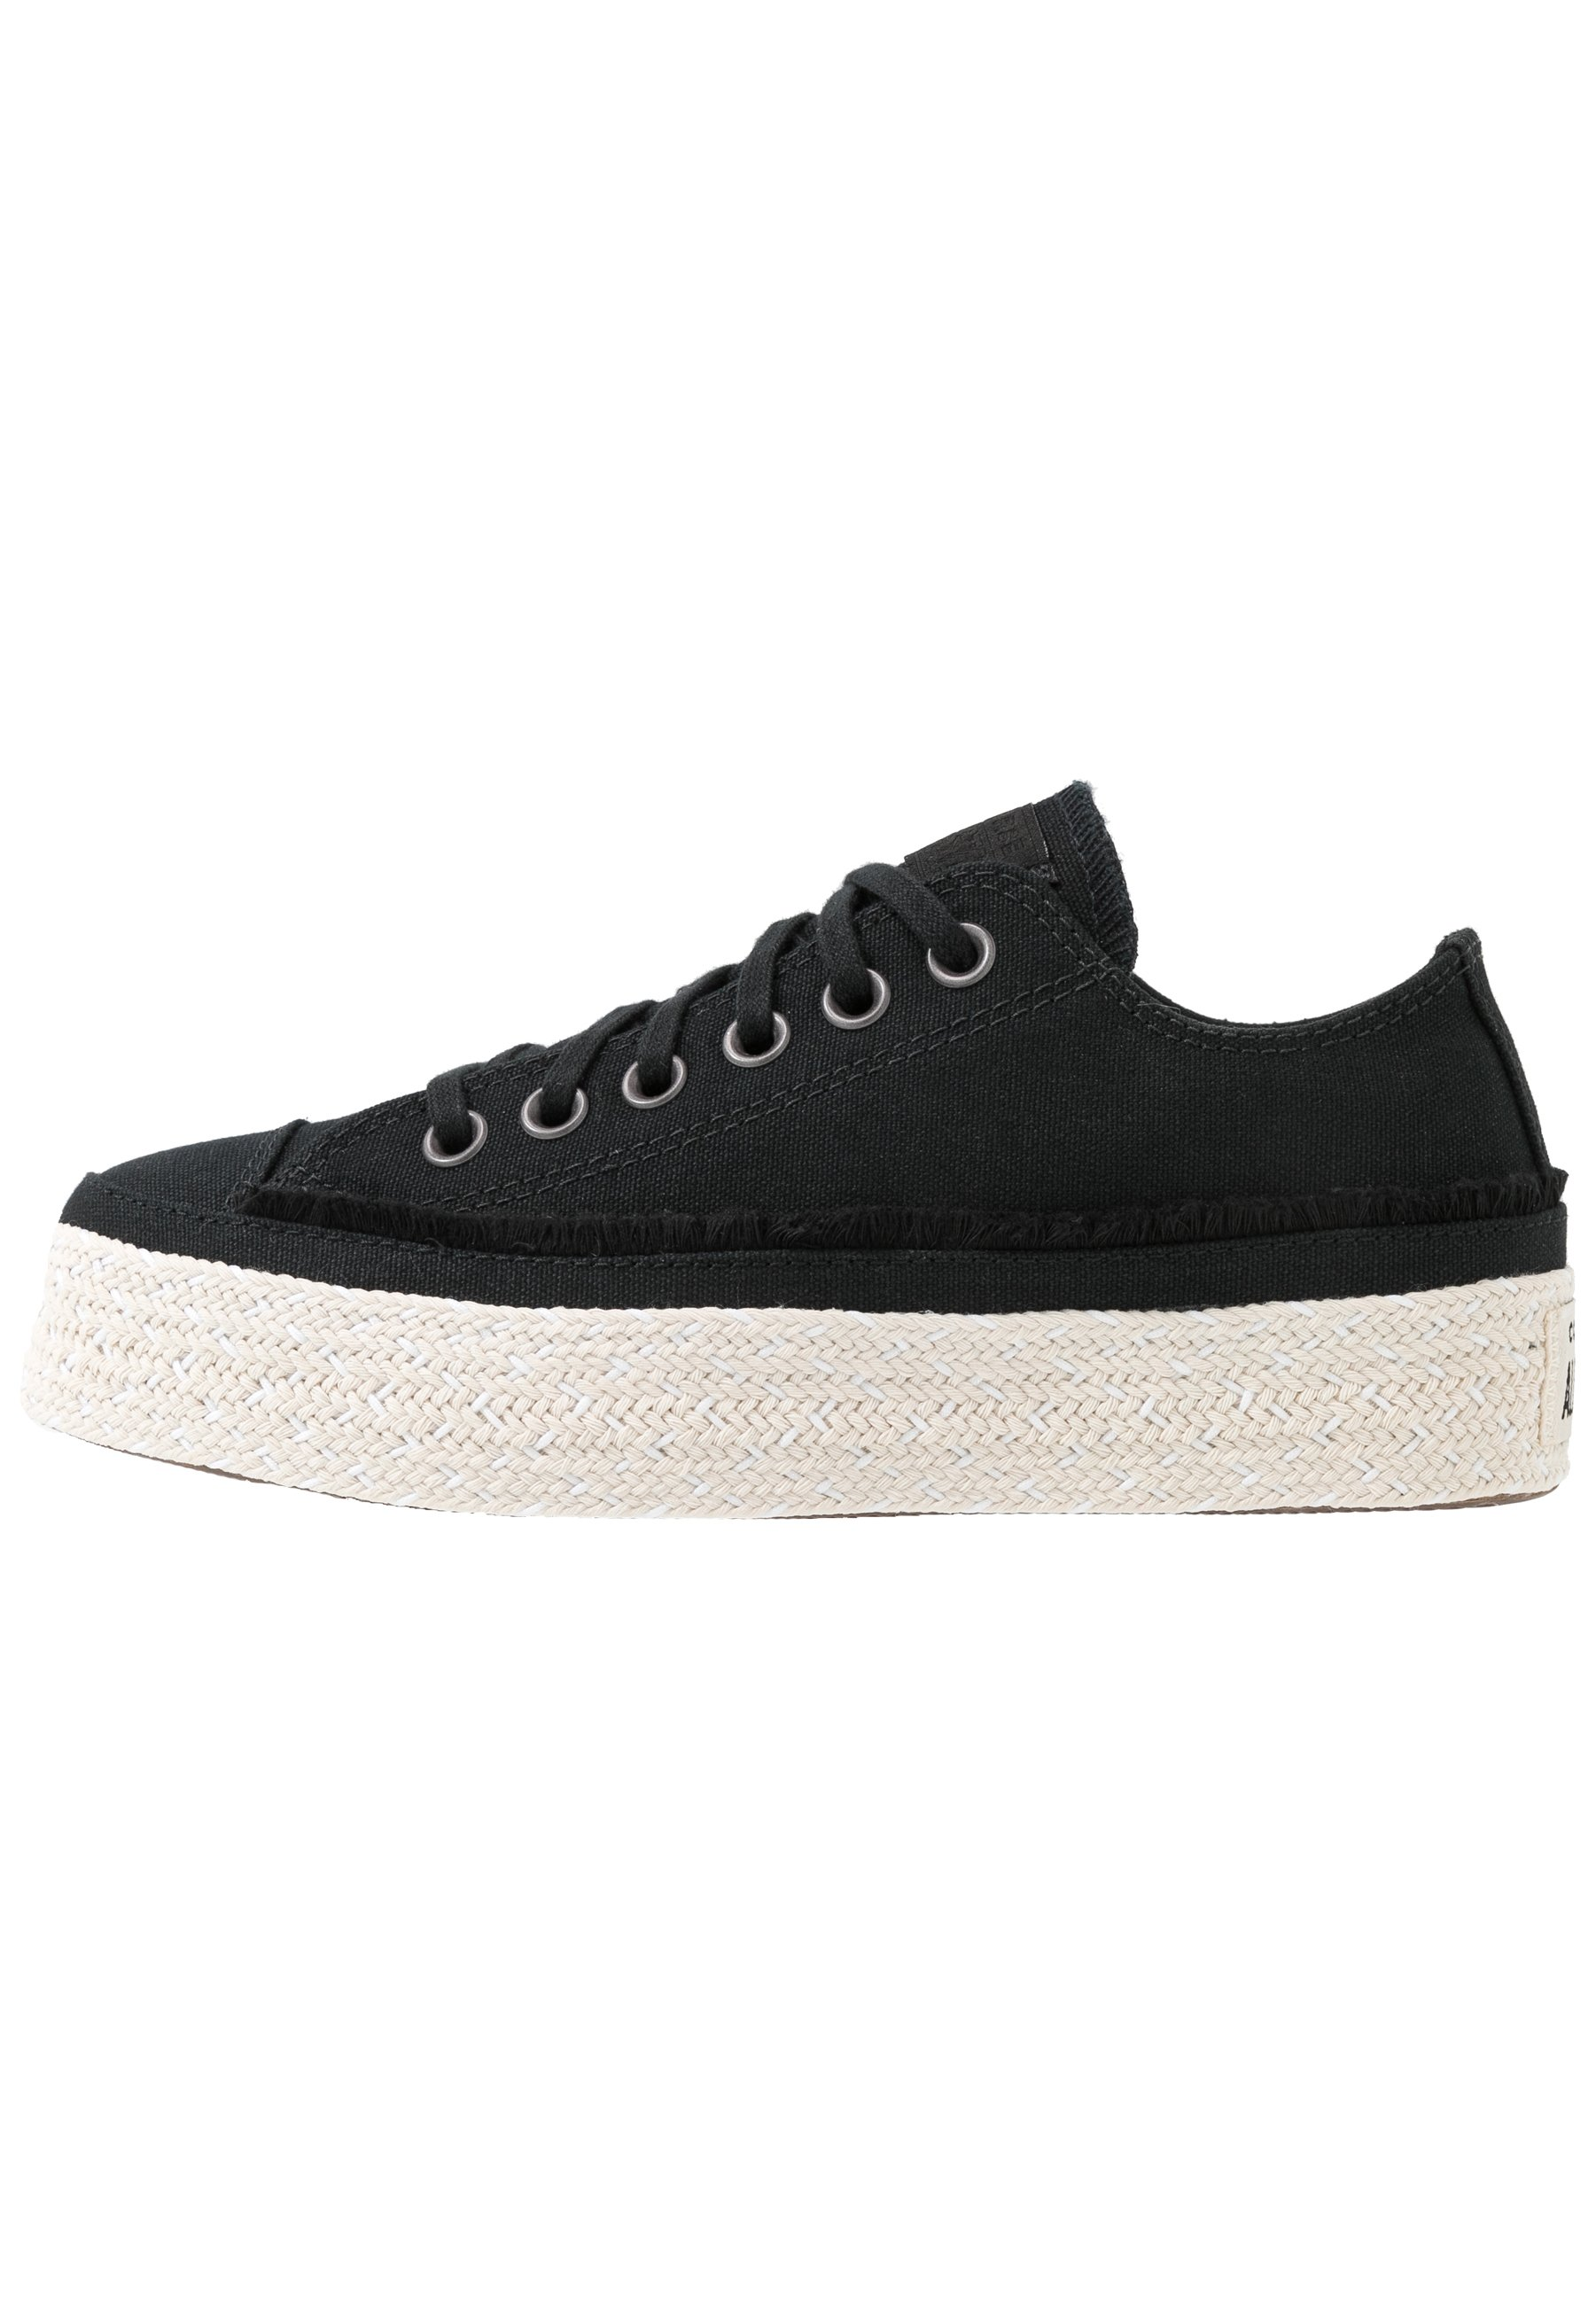 CHUCK TAYLOR ALL STAR Sneakers blackwhitenatural